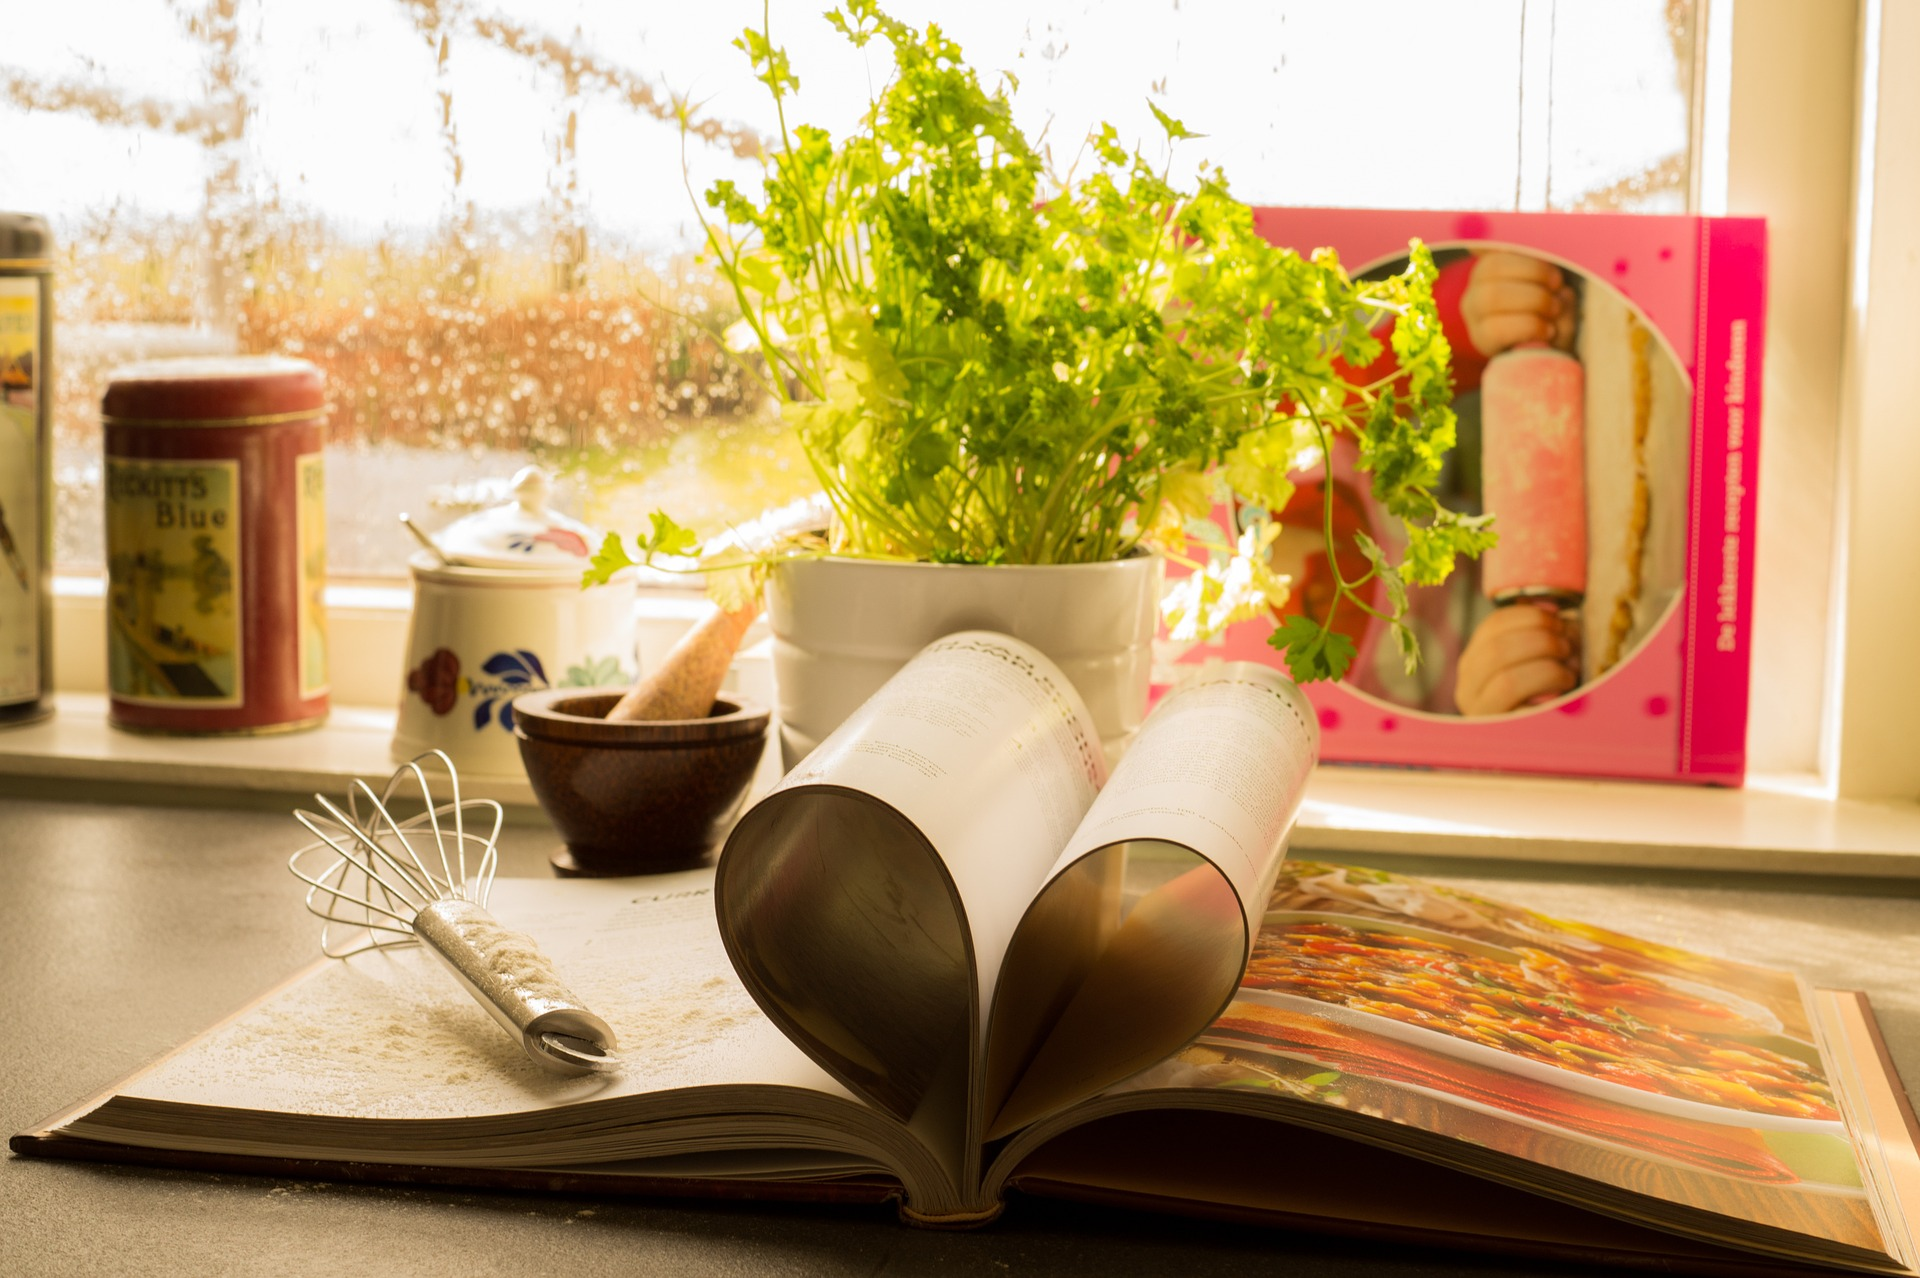 A New Cookbook: Crucial Ingredients for Sustainability Innovation